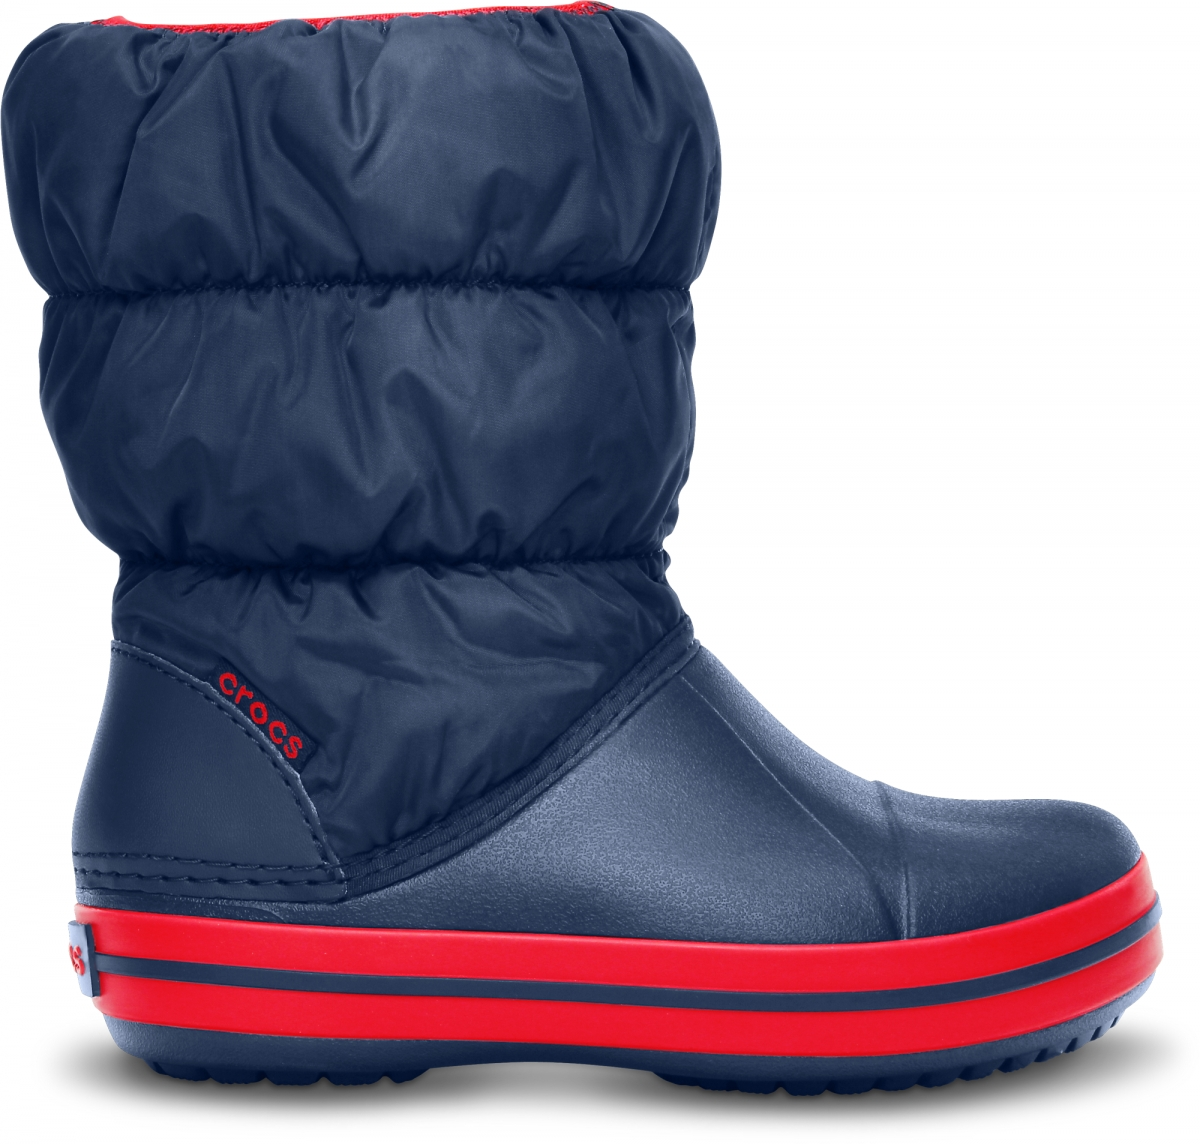 Crocs Winter Puff Boot Kids - Navy/Red, C13 (30-31)